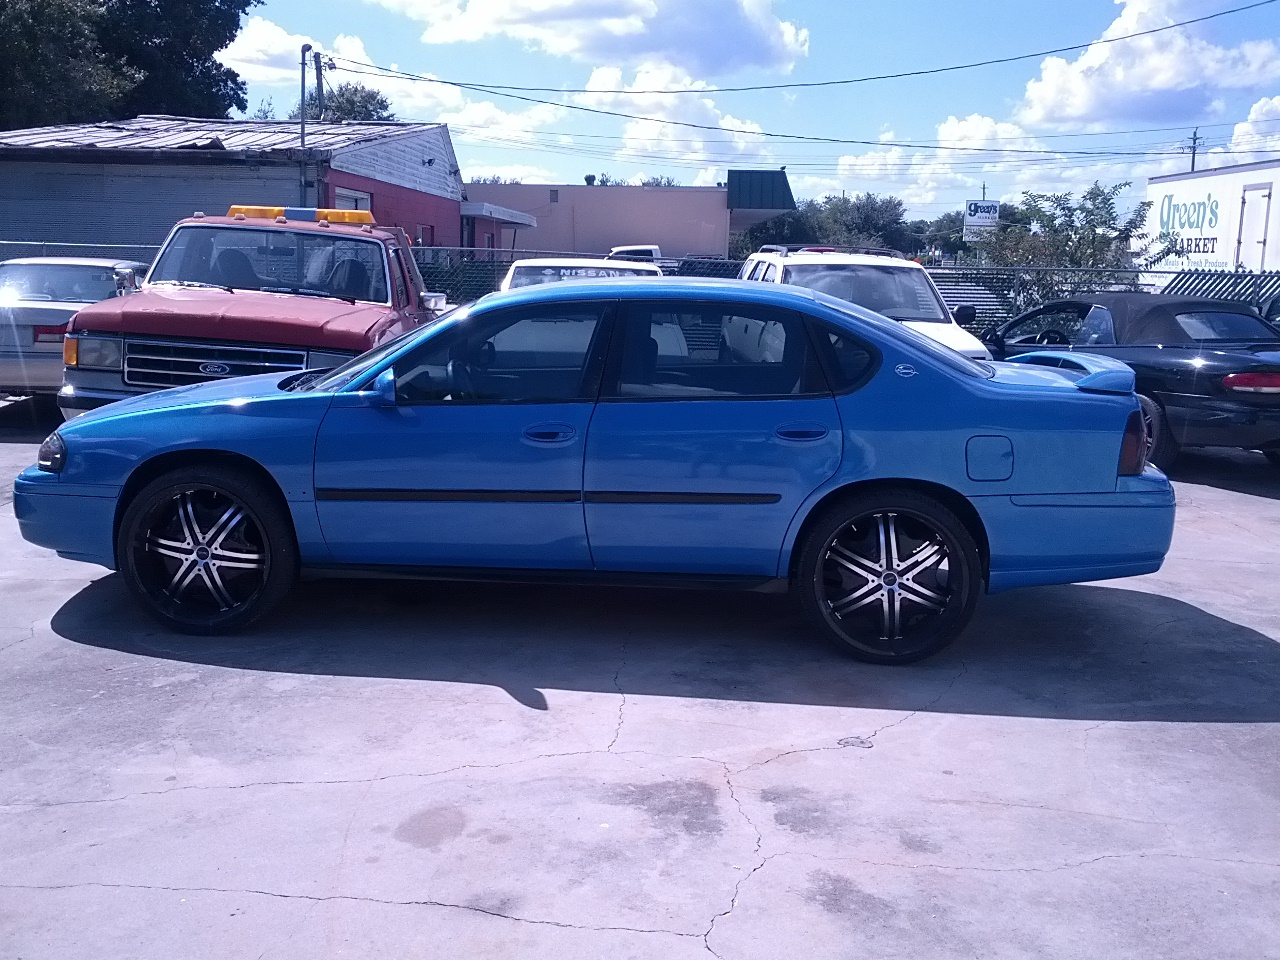 2002 chevrolet impala overview cargurus. Cars Review. Best American Auto & Cars Review